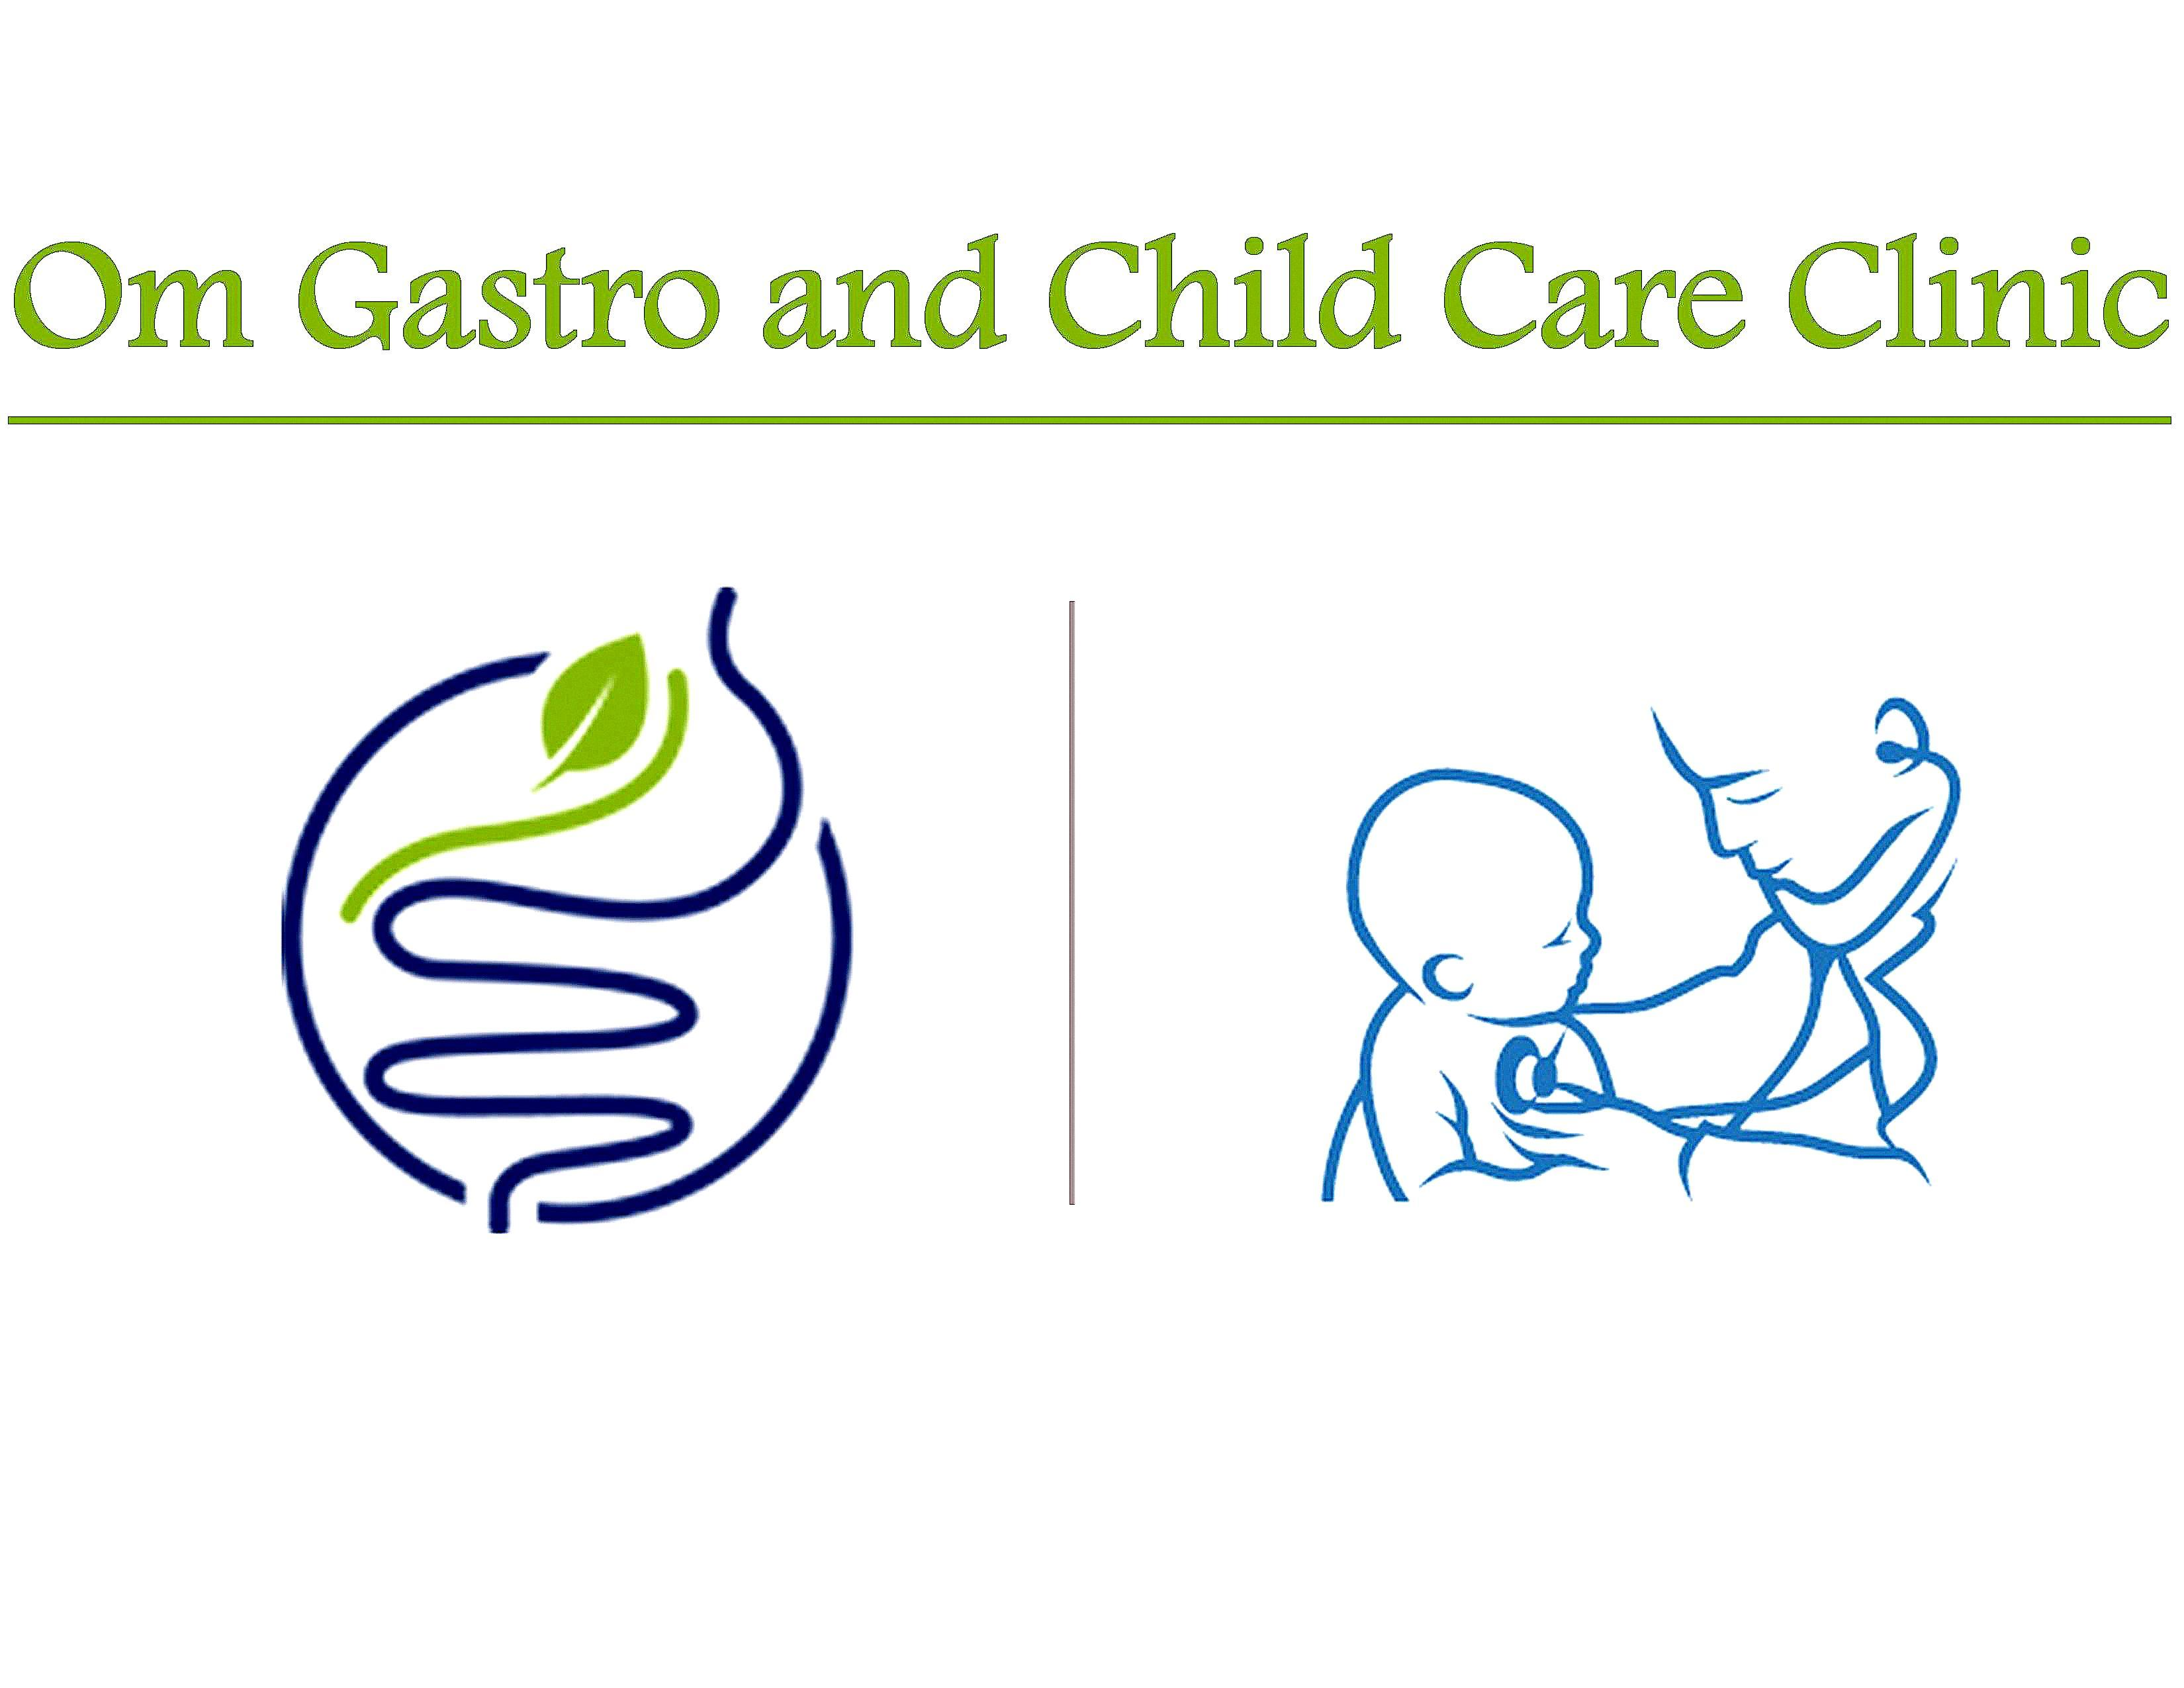 Om Gastro and Child Care Clinic